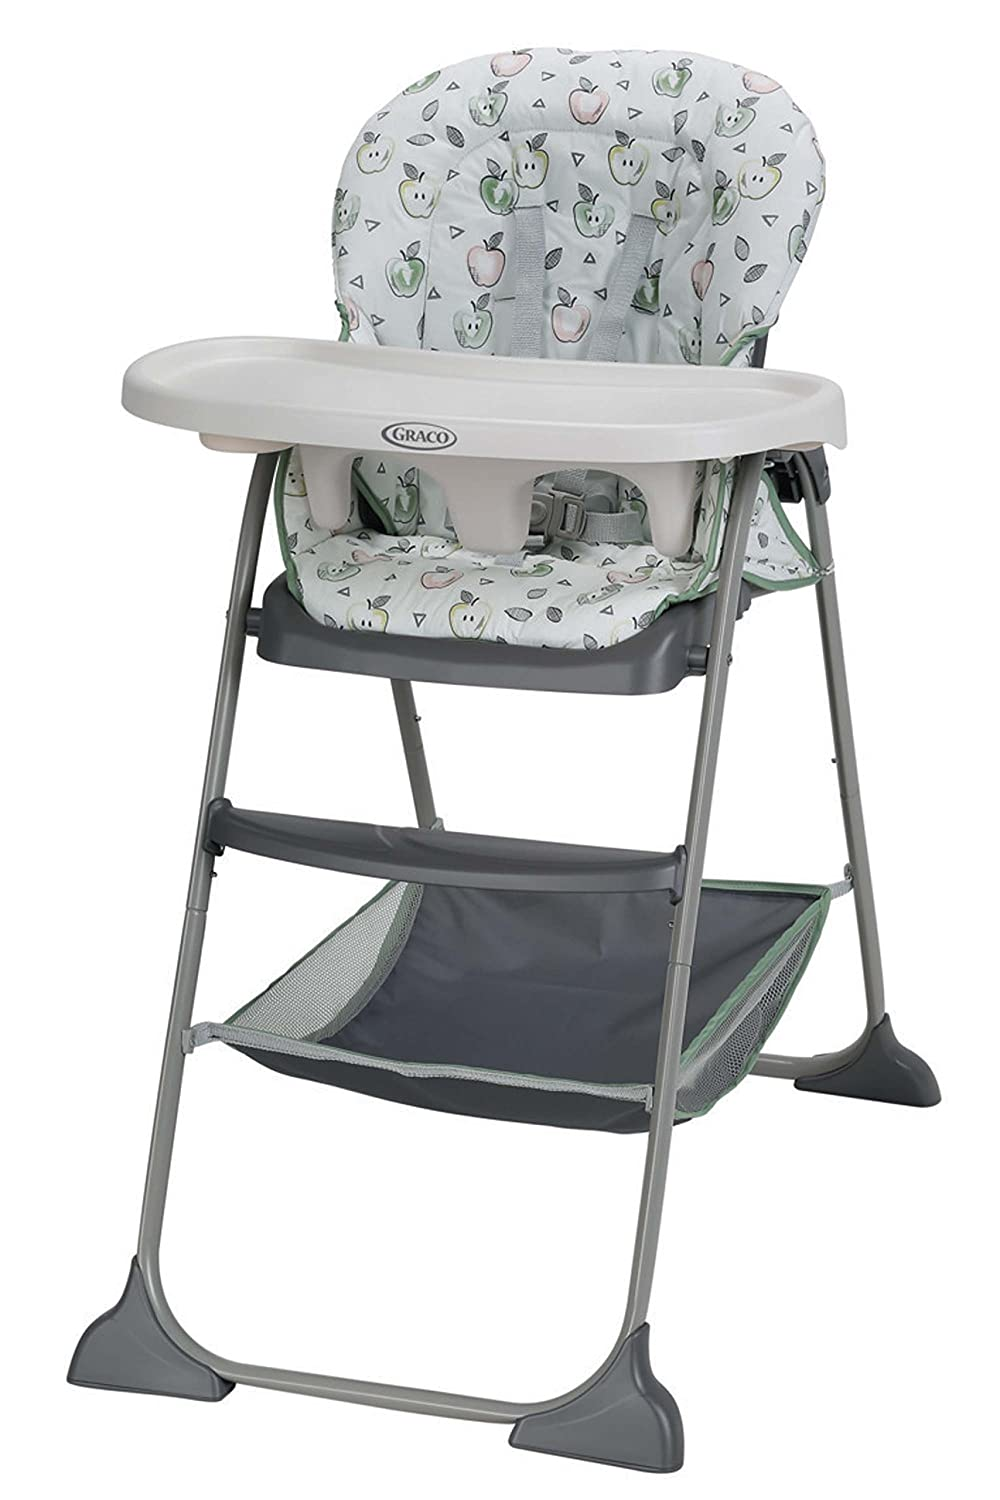 Graco Slim Snacker Highchair, Gala Graco Baby 2048109